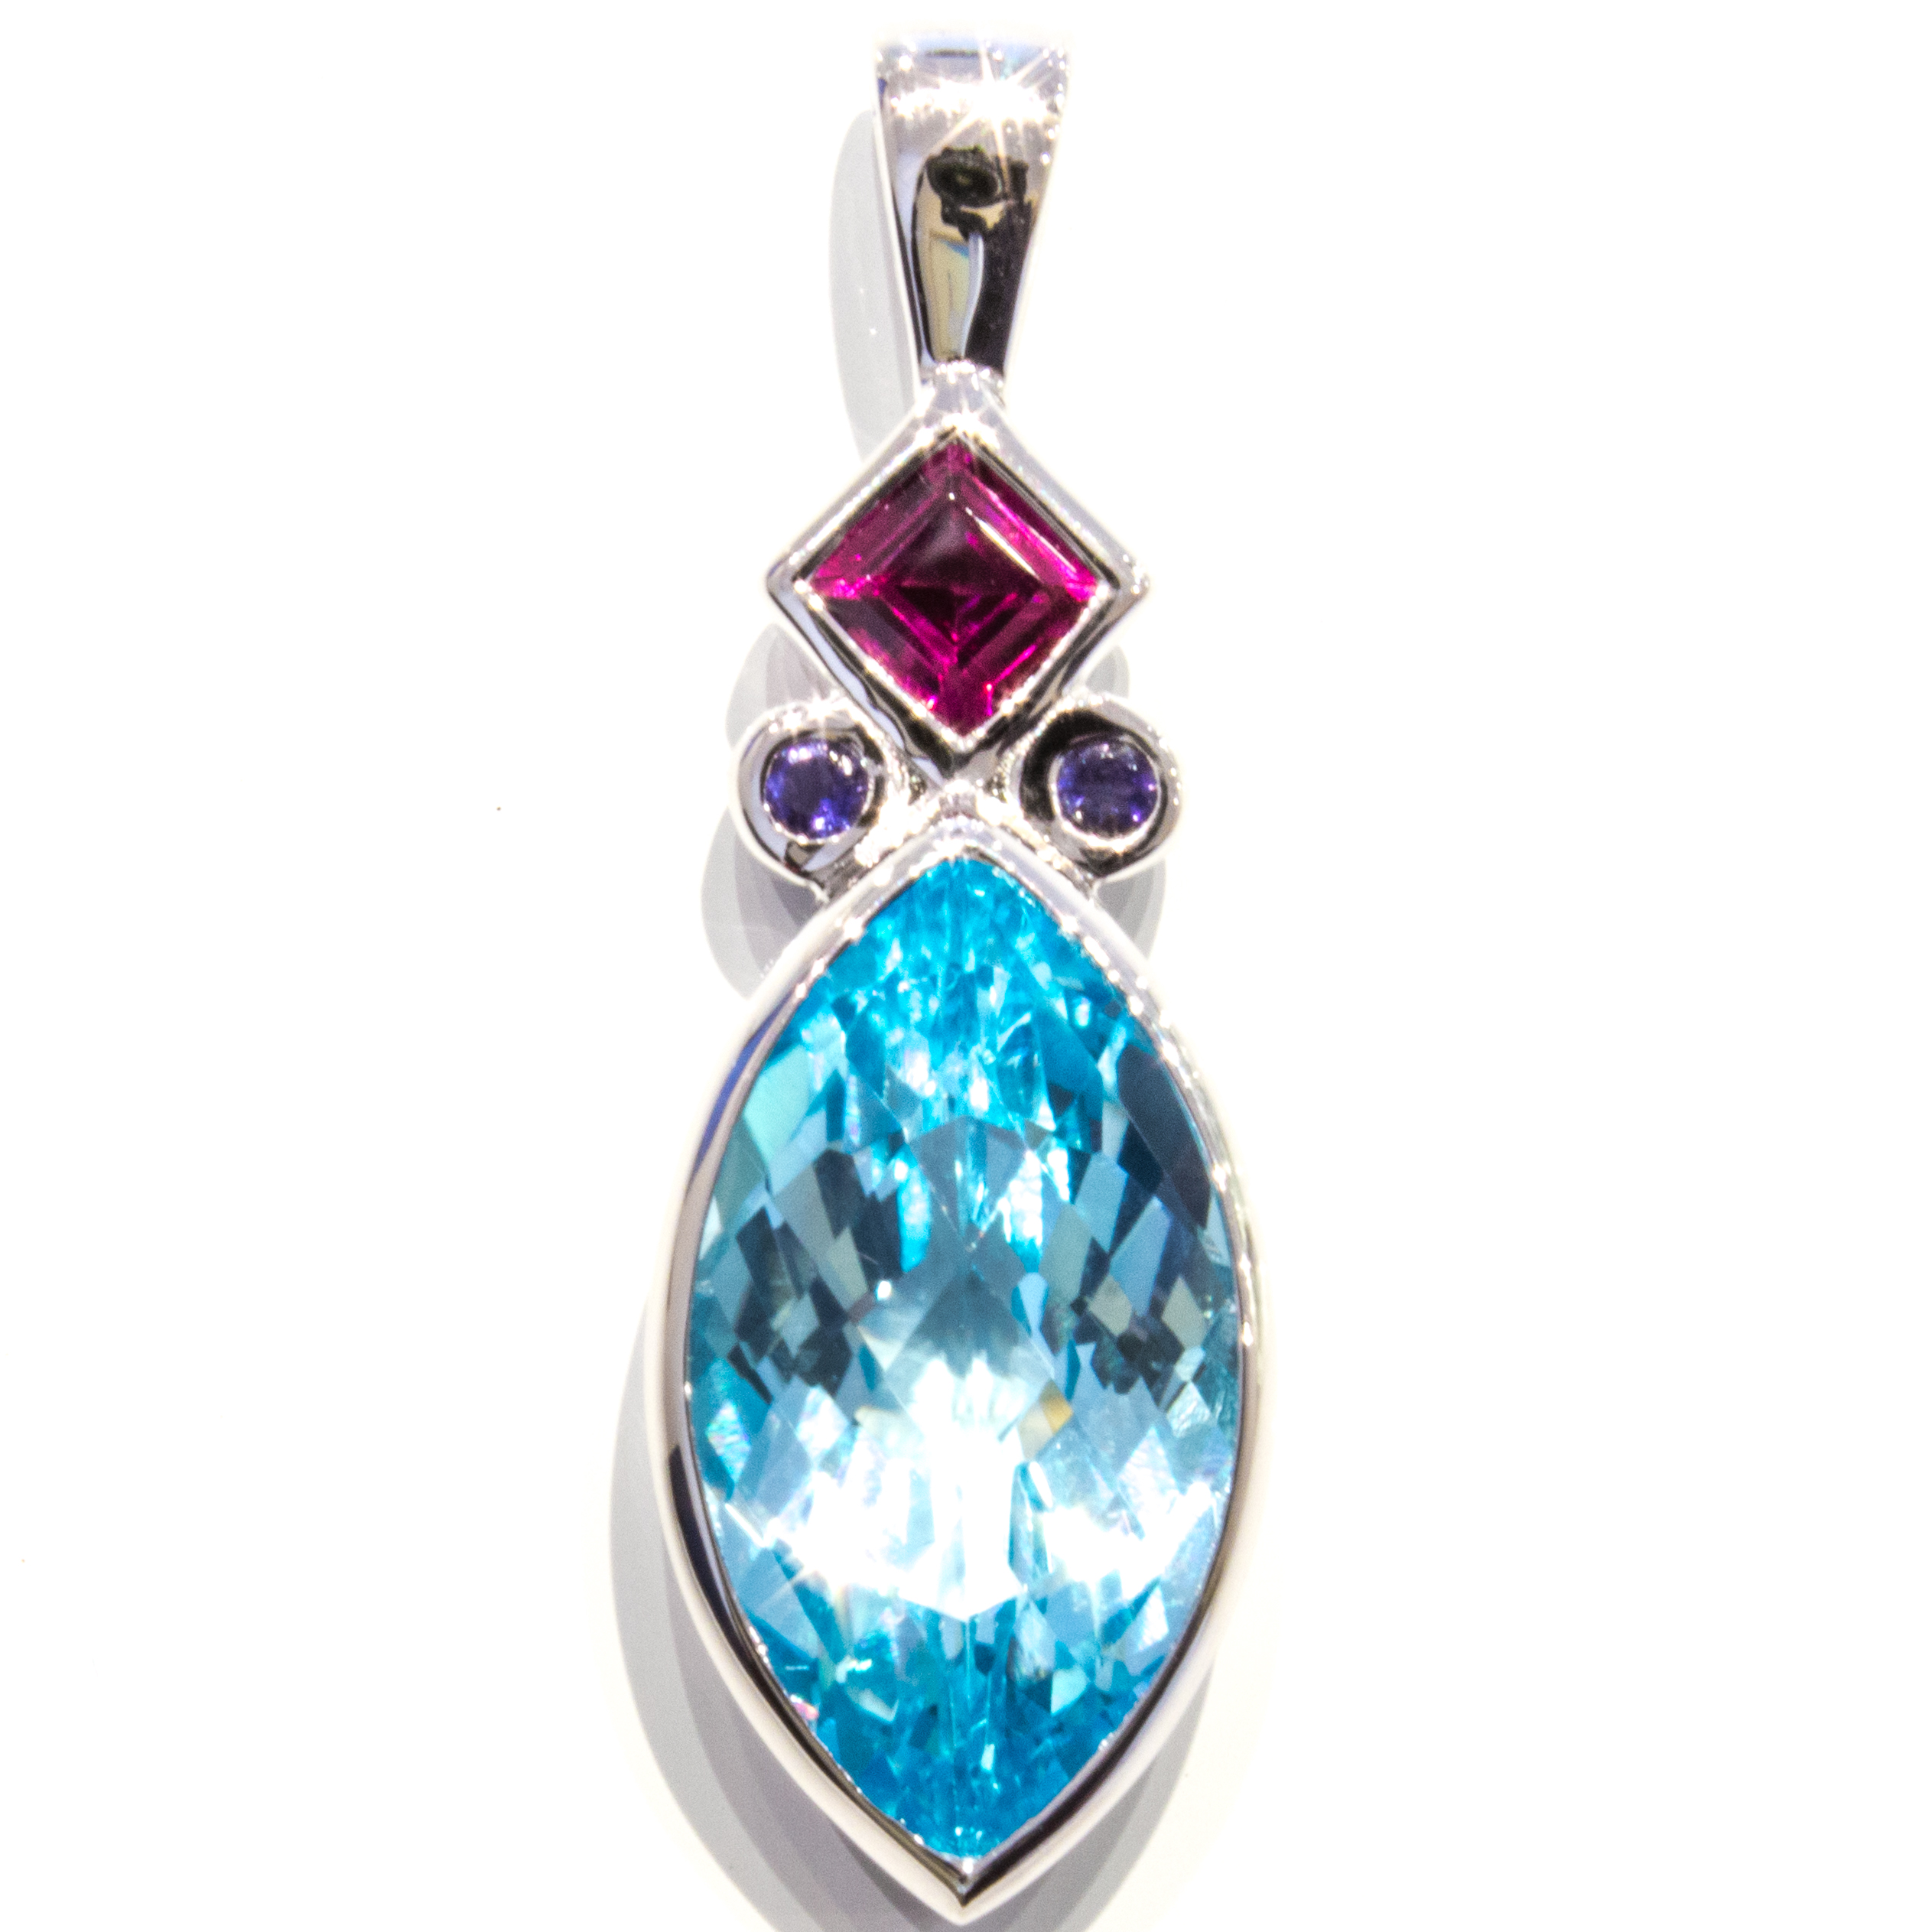 Blue Topaz, Garnet and Iolites Pendant